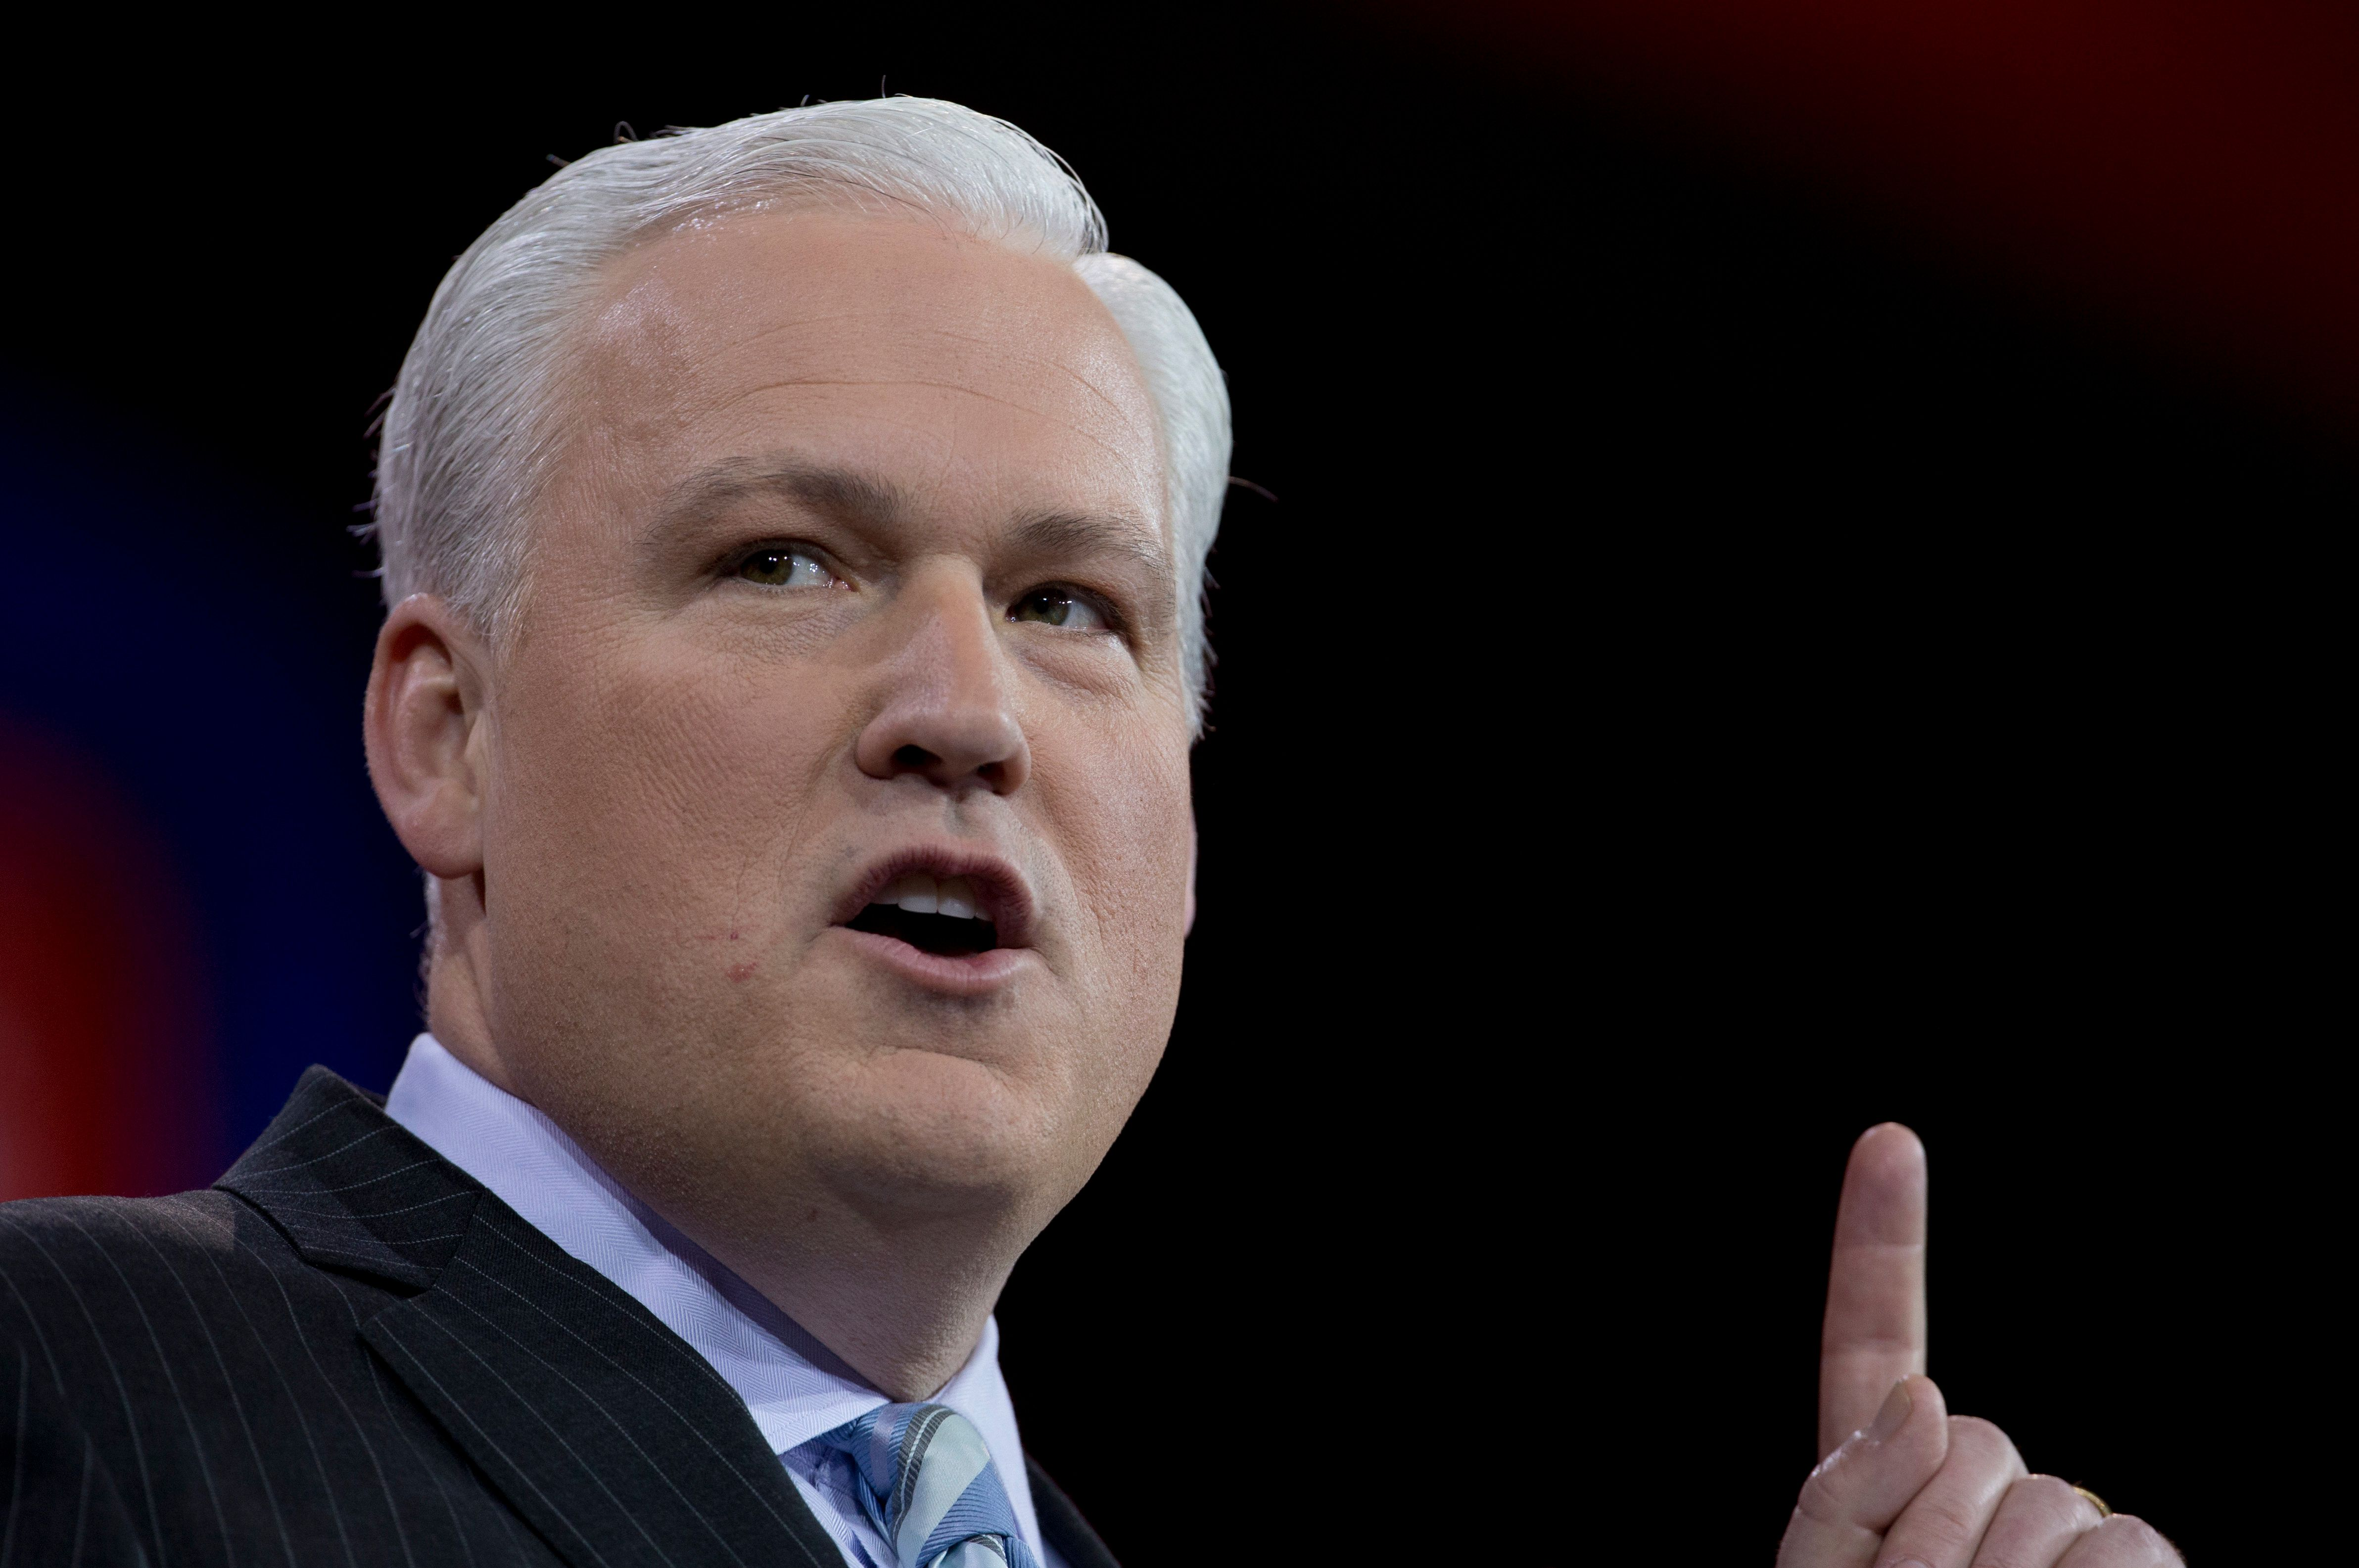 American Conservative Union Chairman Matt Schlapp speaks during the Conservative Political Action Conference (CPAC) in National Harbor, Md., Friday, Feb. 27, 2015. (AP Photo/Carolyn Kaster)